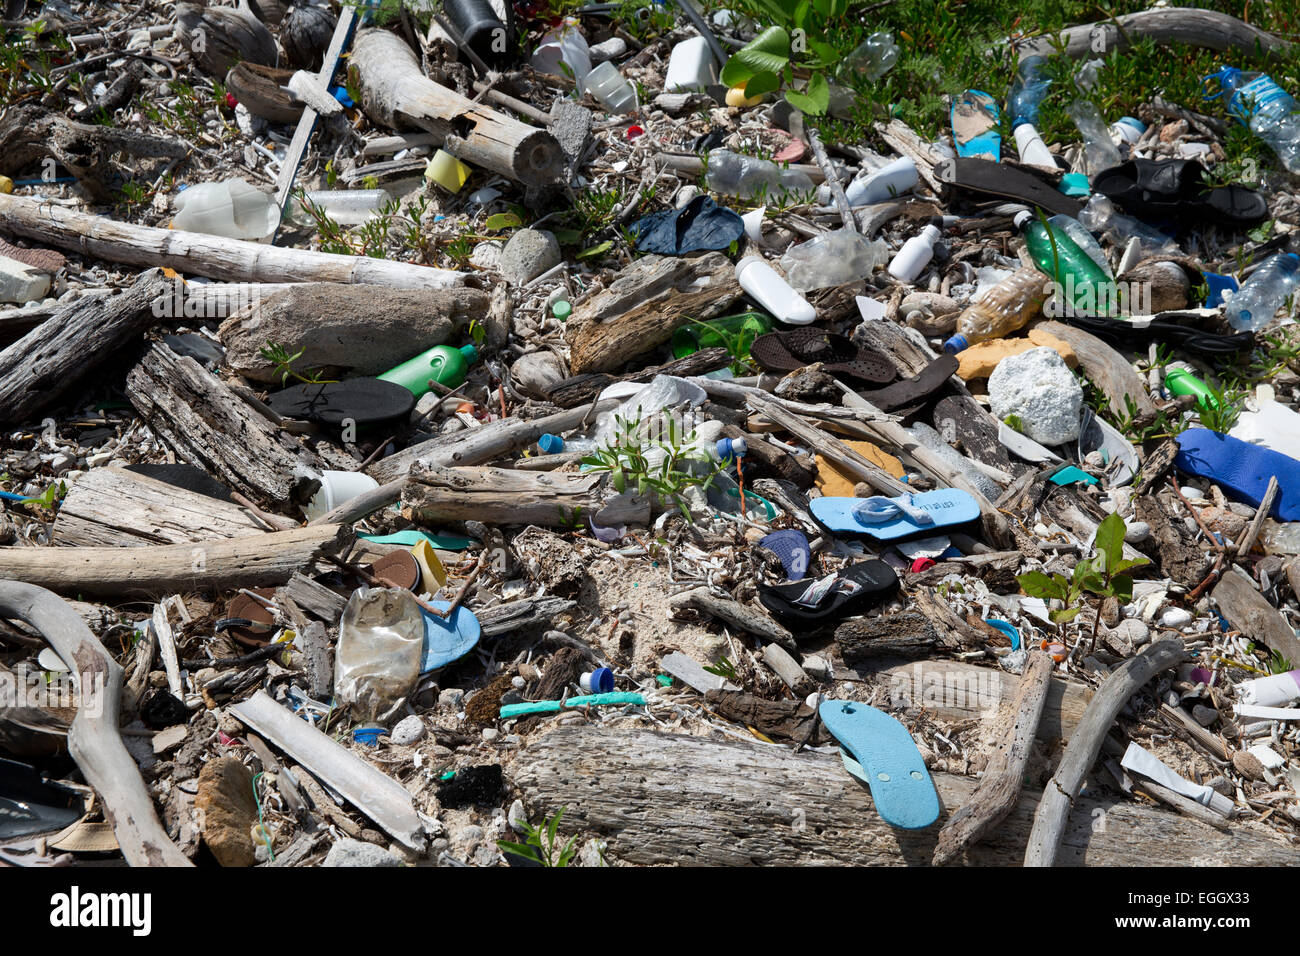 plastic debris pollution on the beach near Mahahual, Quintana Roo, Mexico - Stock Image